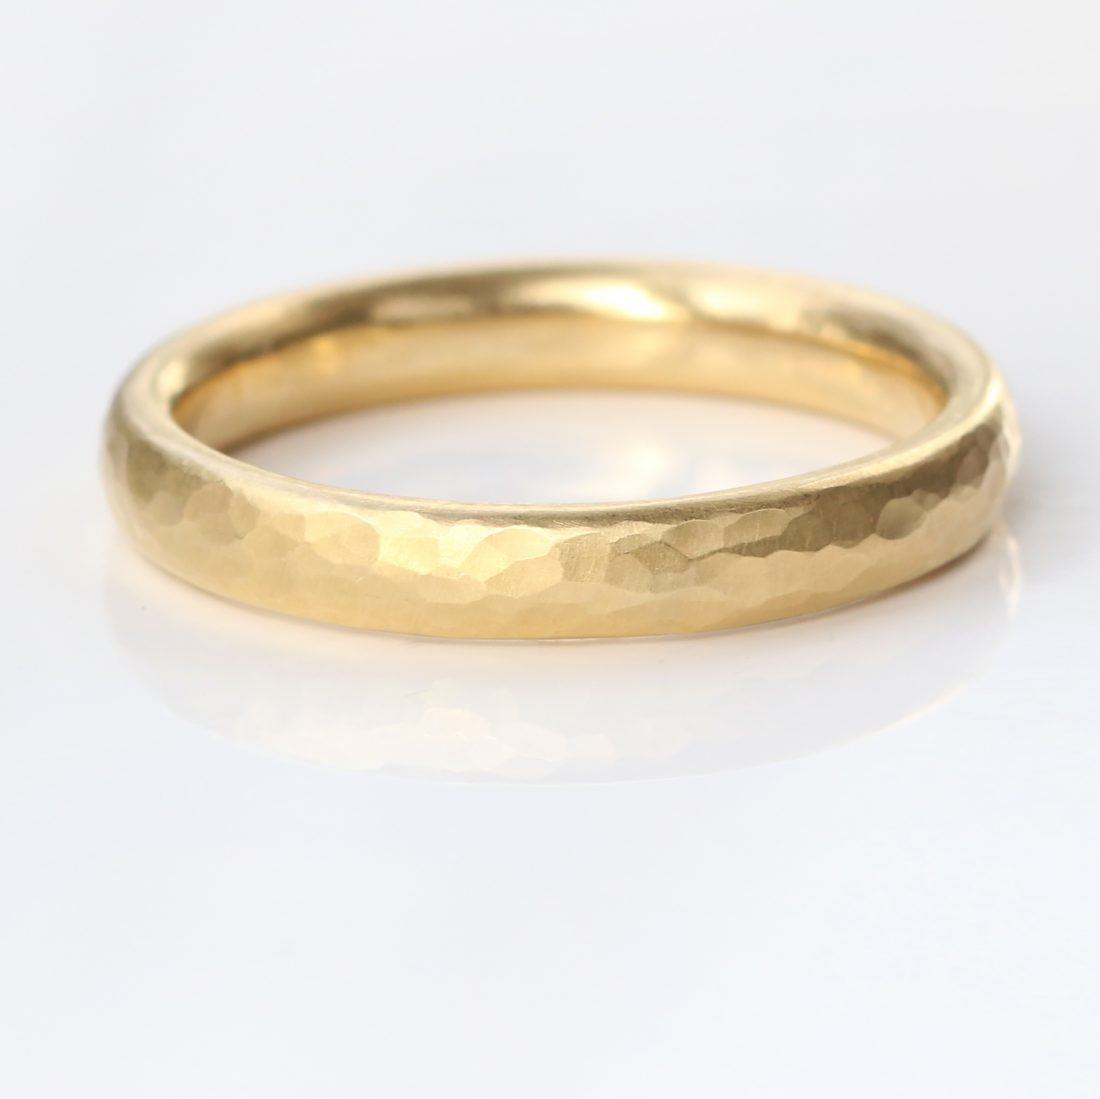 3mm half round wedding ring yellow gold